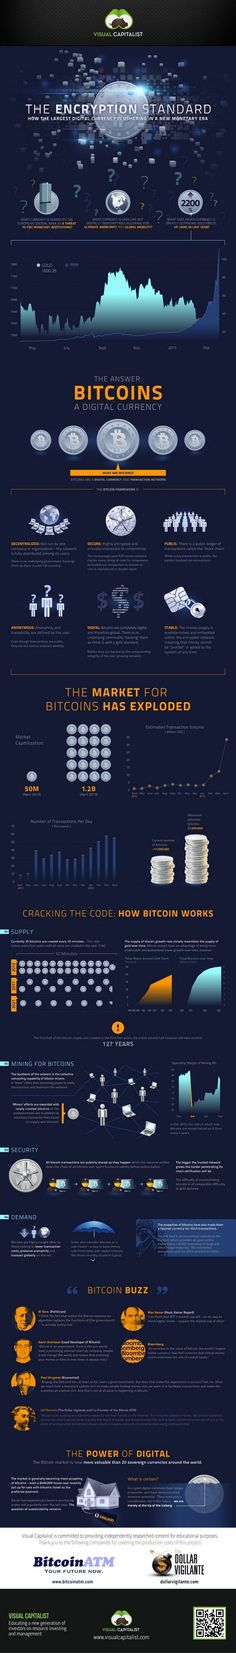 Bitcoin Infographic 700 digital coins in the world. None oriented towards actually being used as currency. That all changes now! Save money with retail shopping while investing in the hottest crypto coin ever!